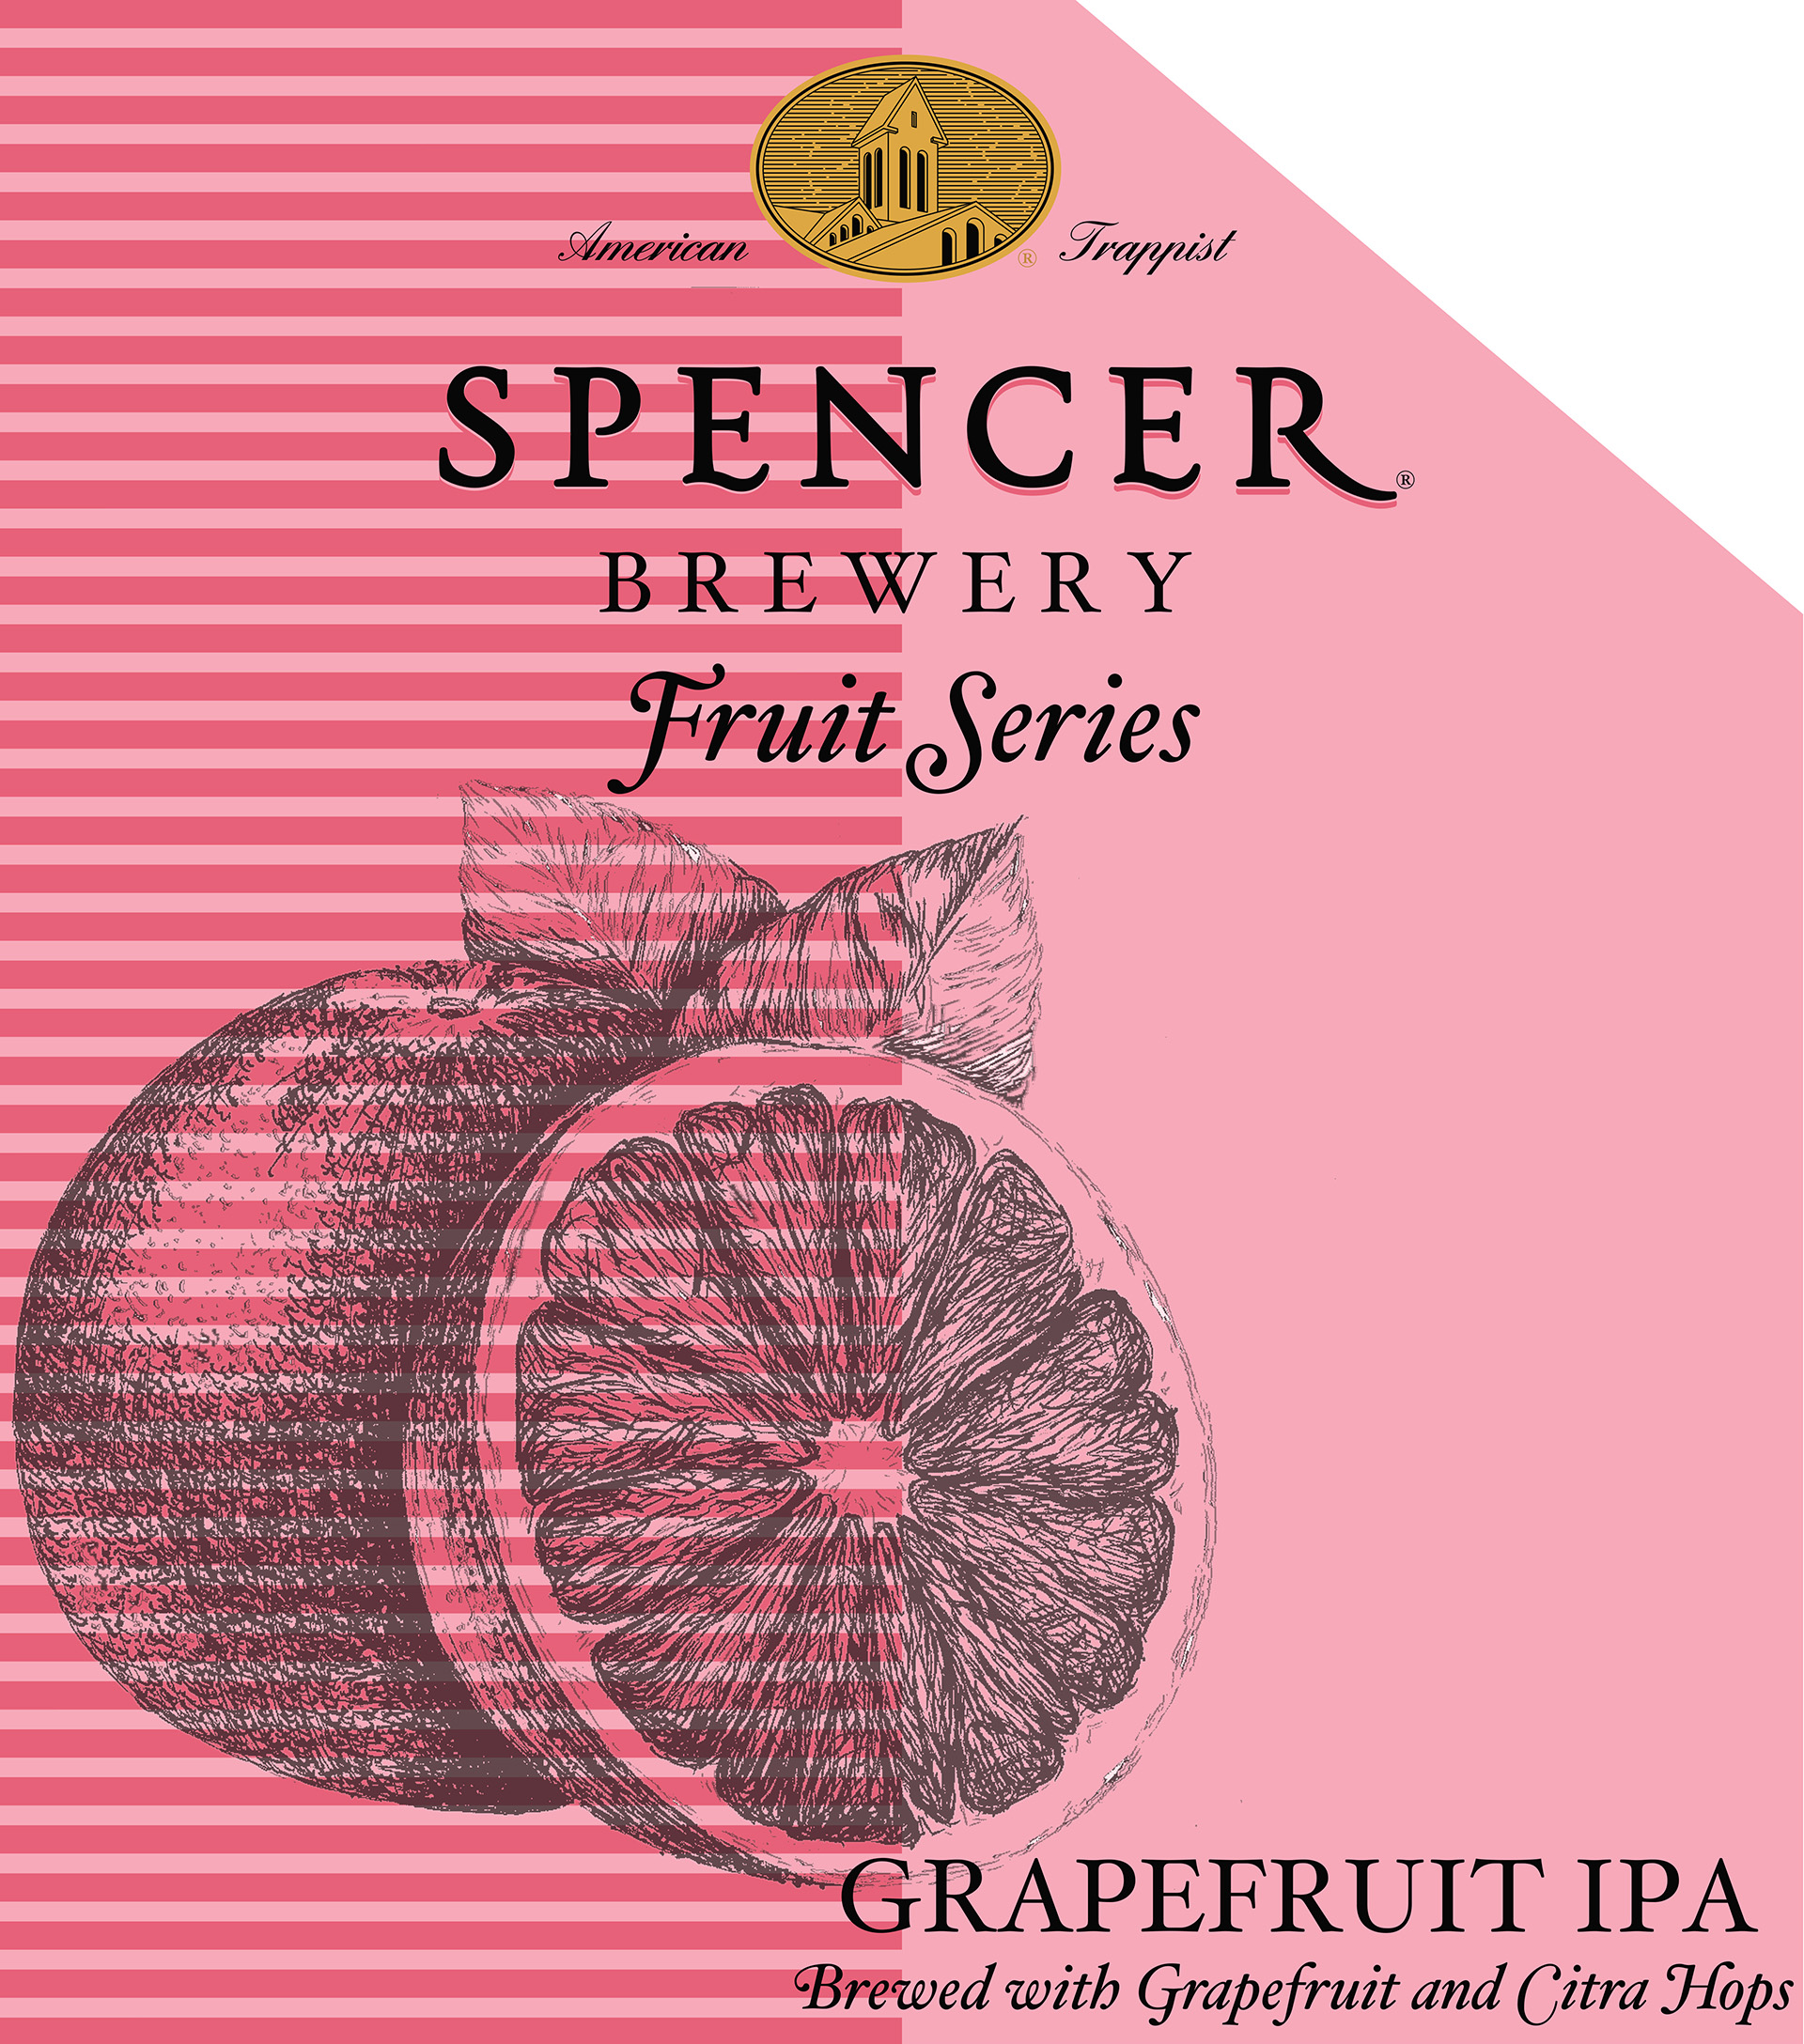 Grapefruit IPA 15x24 Case Stack topper